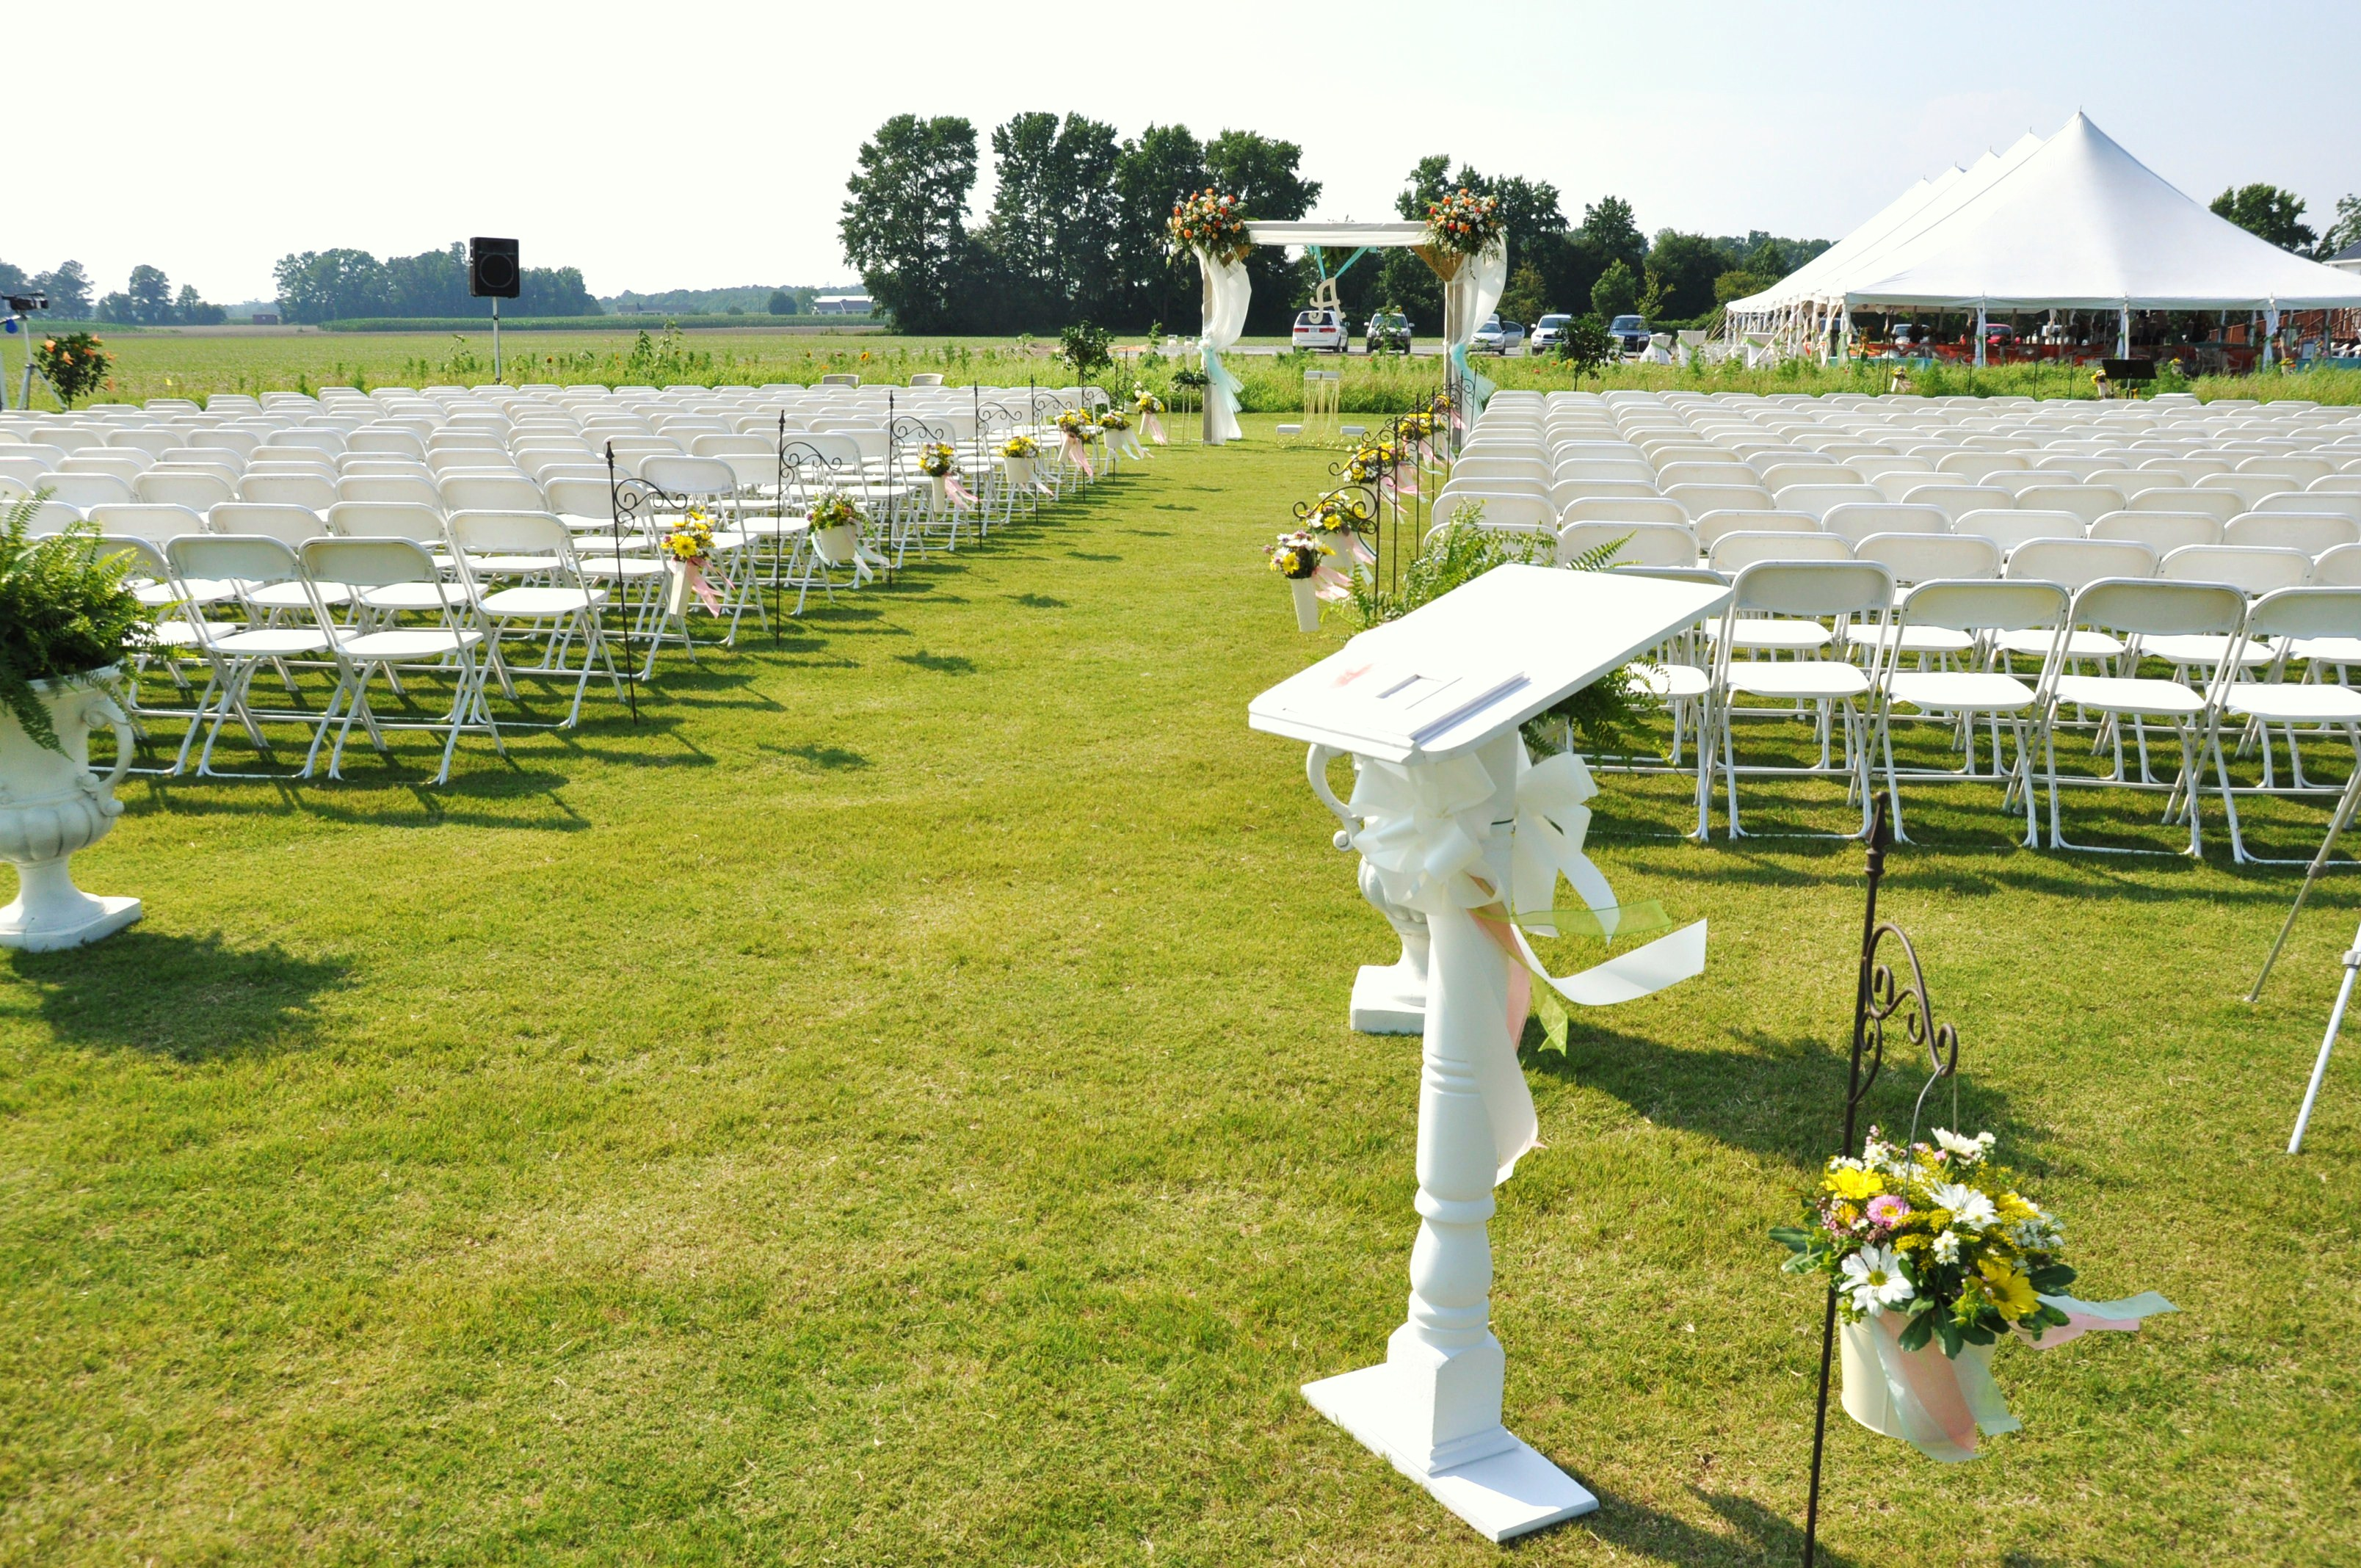 Honeypearl Range is a venue at Hamstead Acres